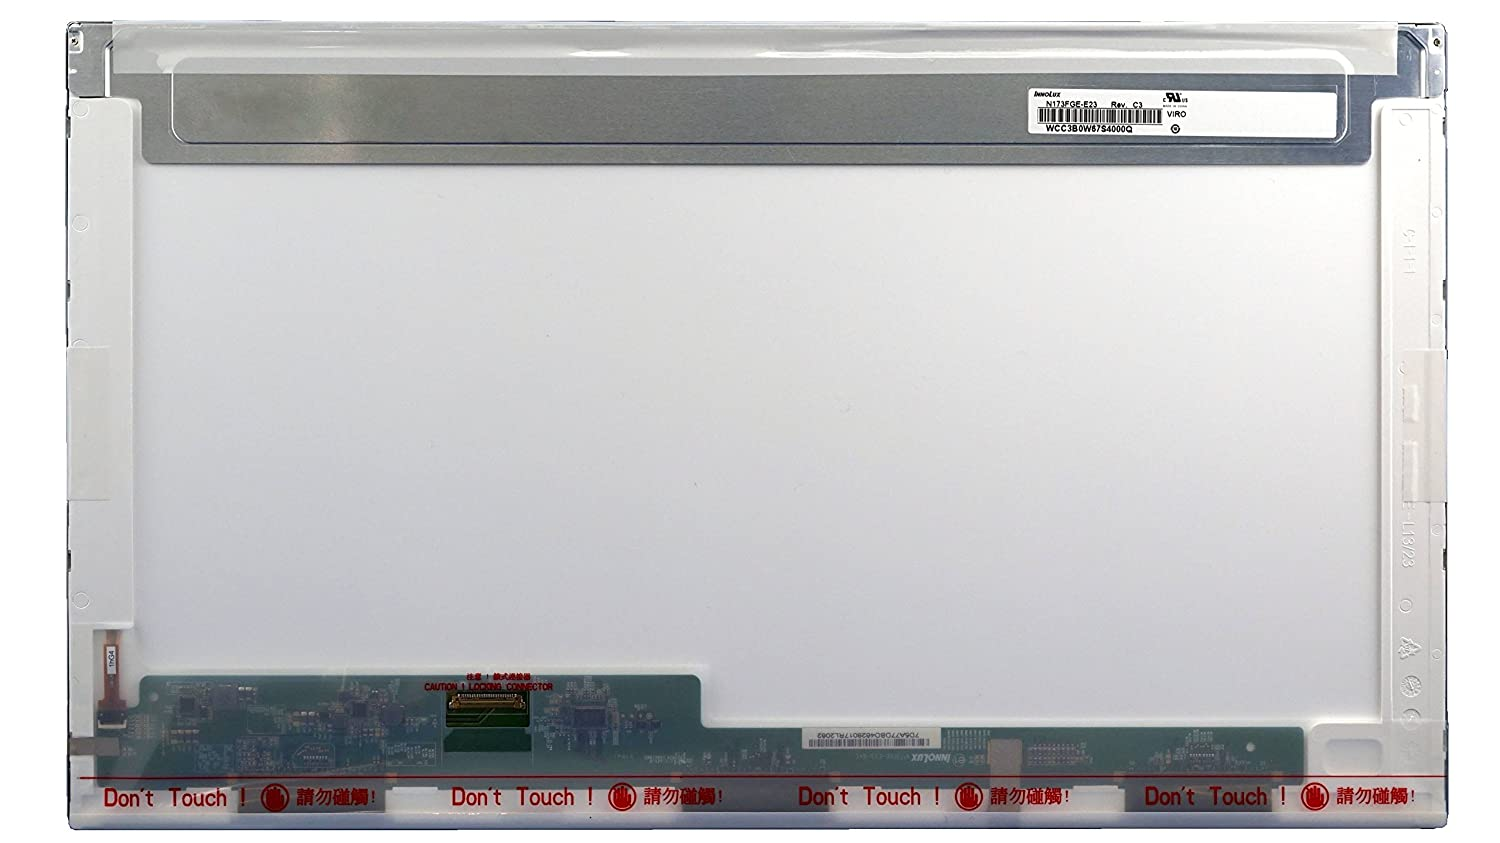 e1 Replacement LAPTOP LCD Screen 17.3 WXGA++ LED DIODE LP173WD1-TPE1 tp Lg Philips Lp173wd1 Substitute Only. Not a